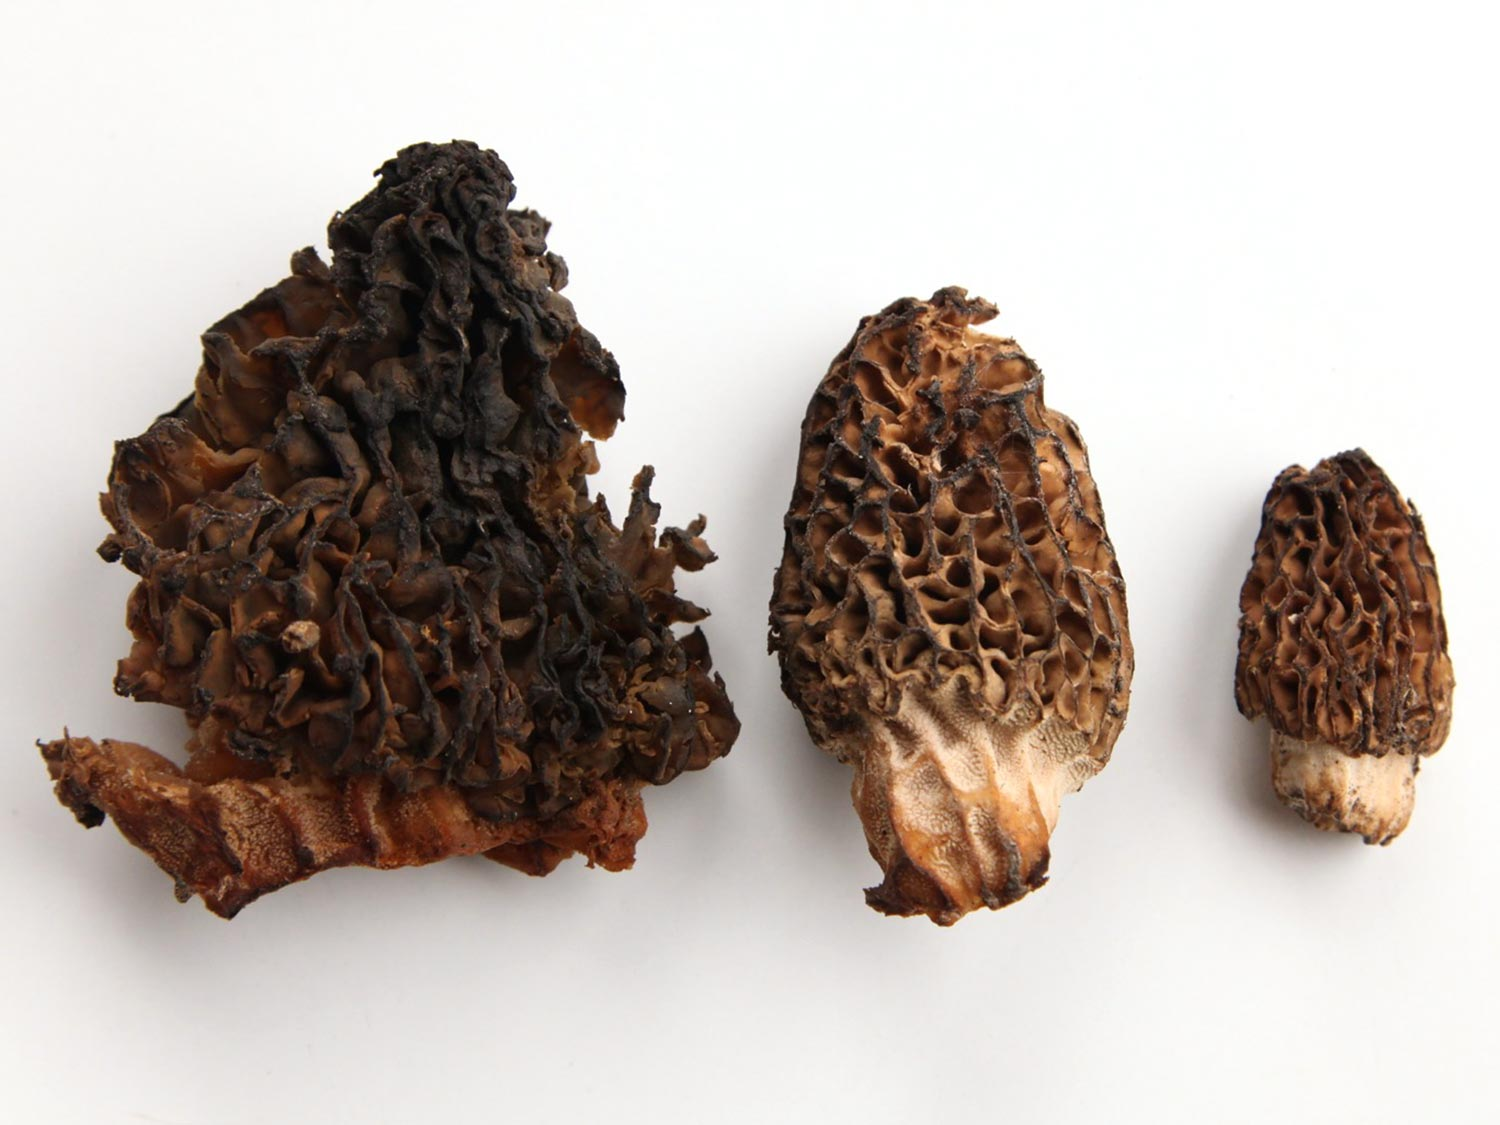 Three morel mushrooms on white background